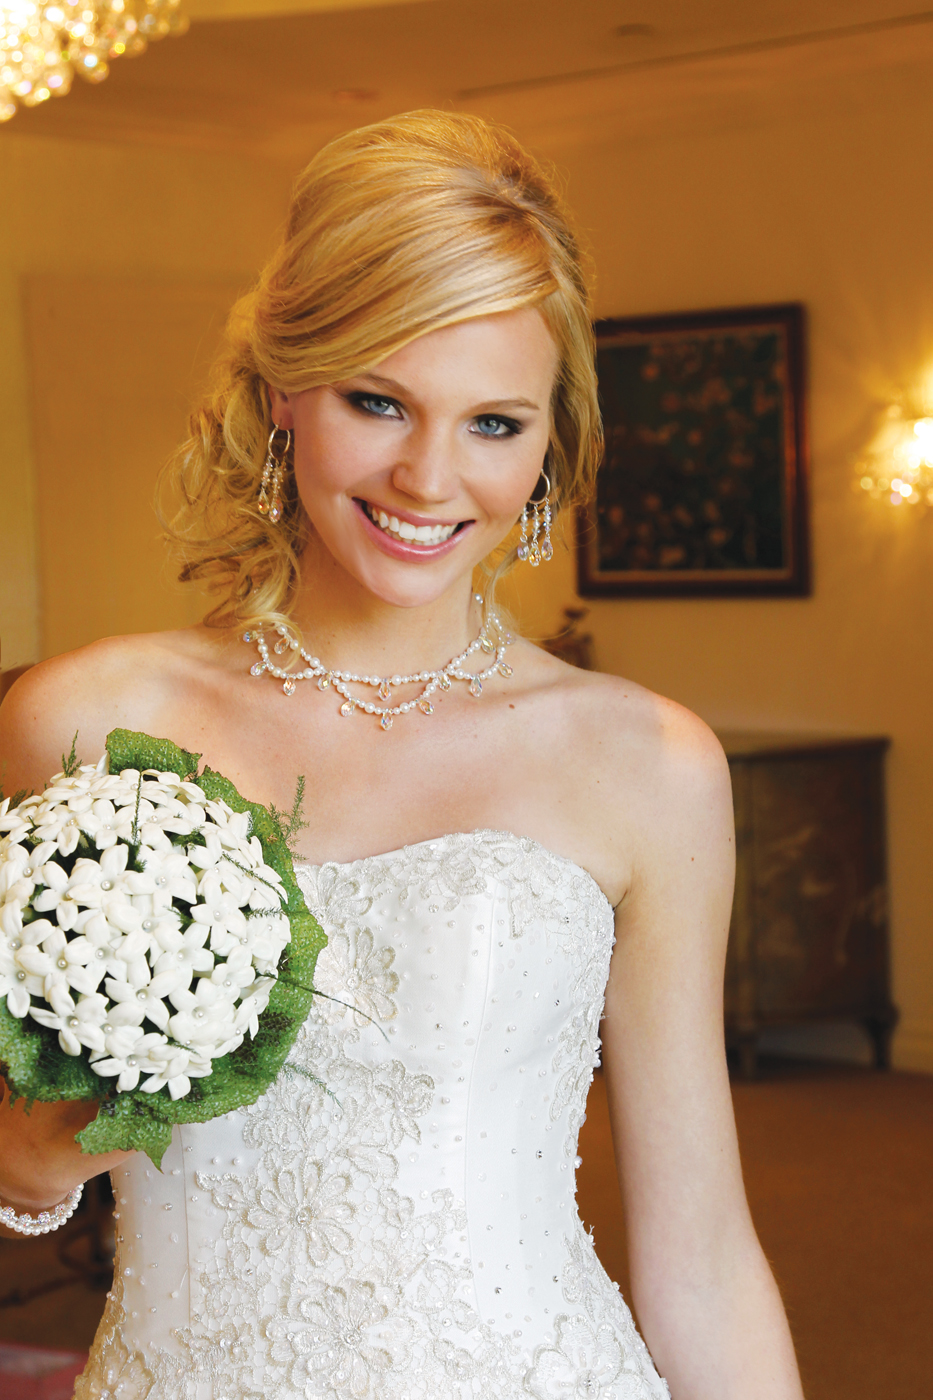 Wedding Makeup Tips At Home : Bridal Beauty Tips for a Romantic Look